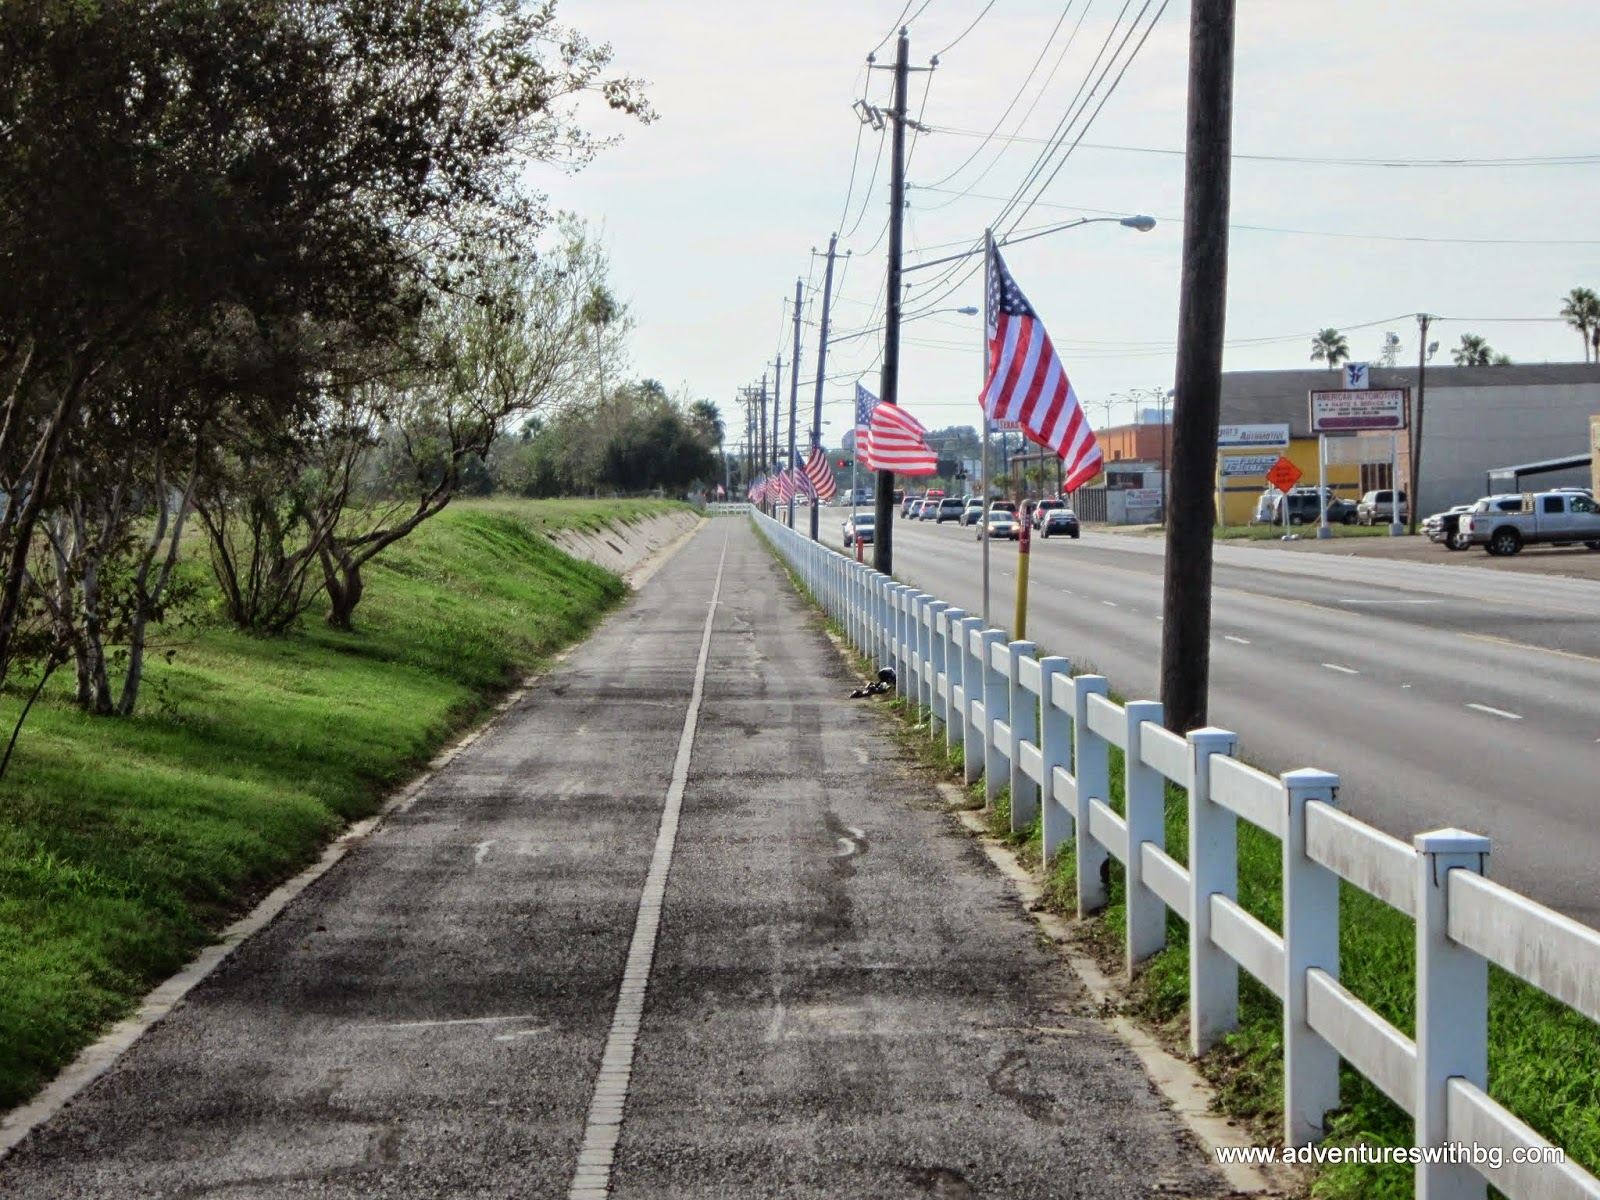 The trail lined with flags for Veteran's Day